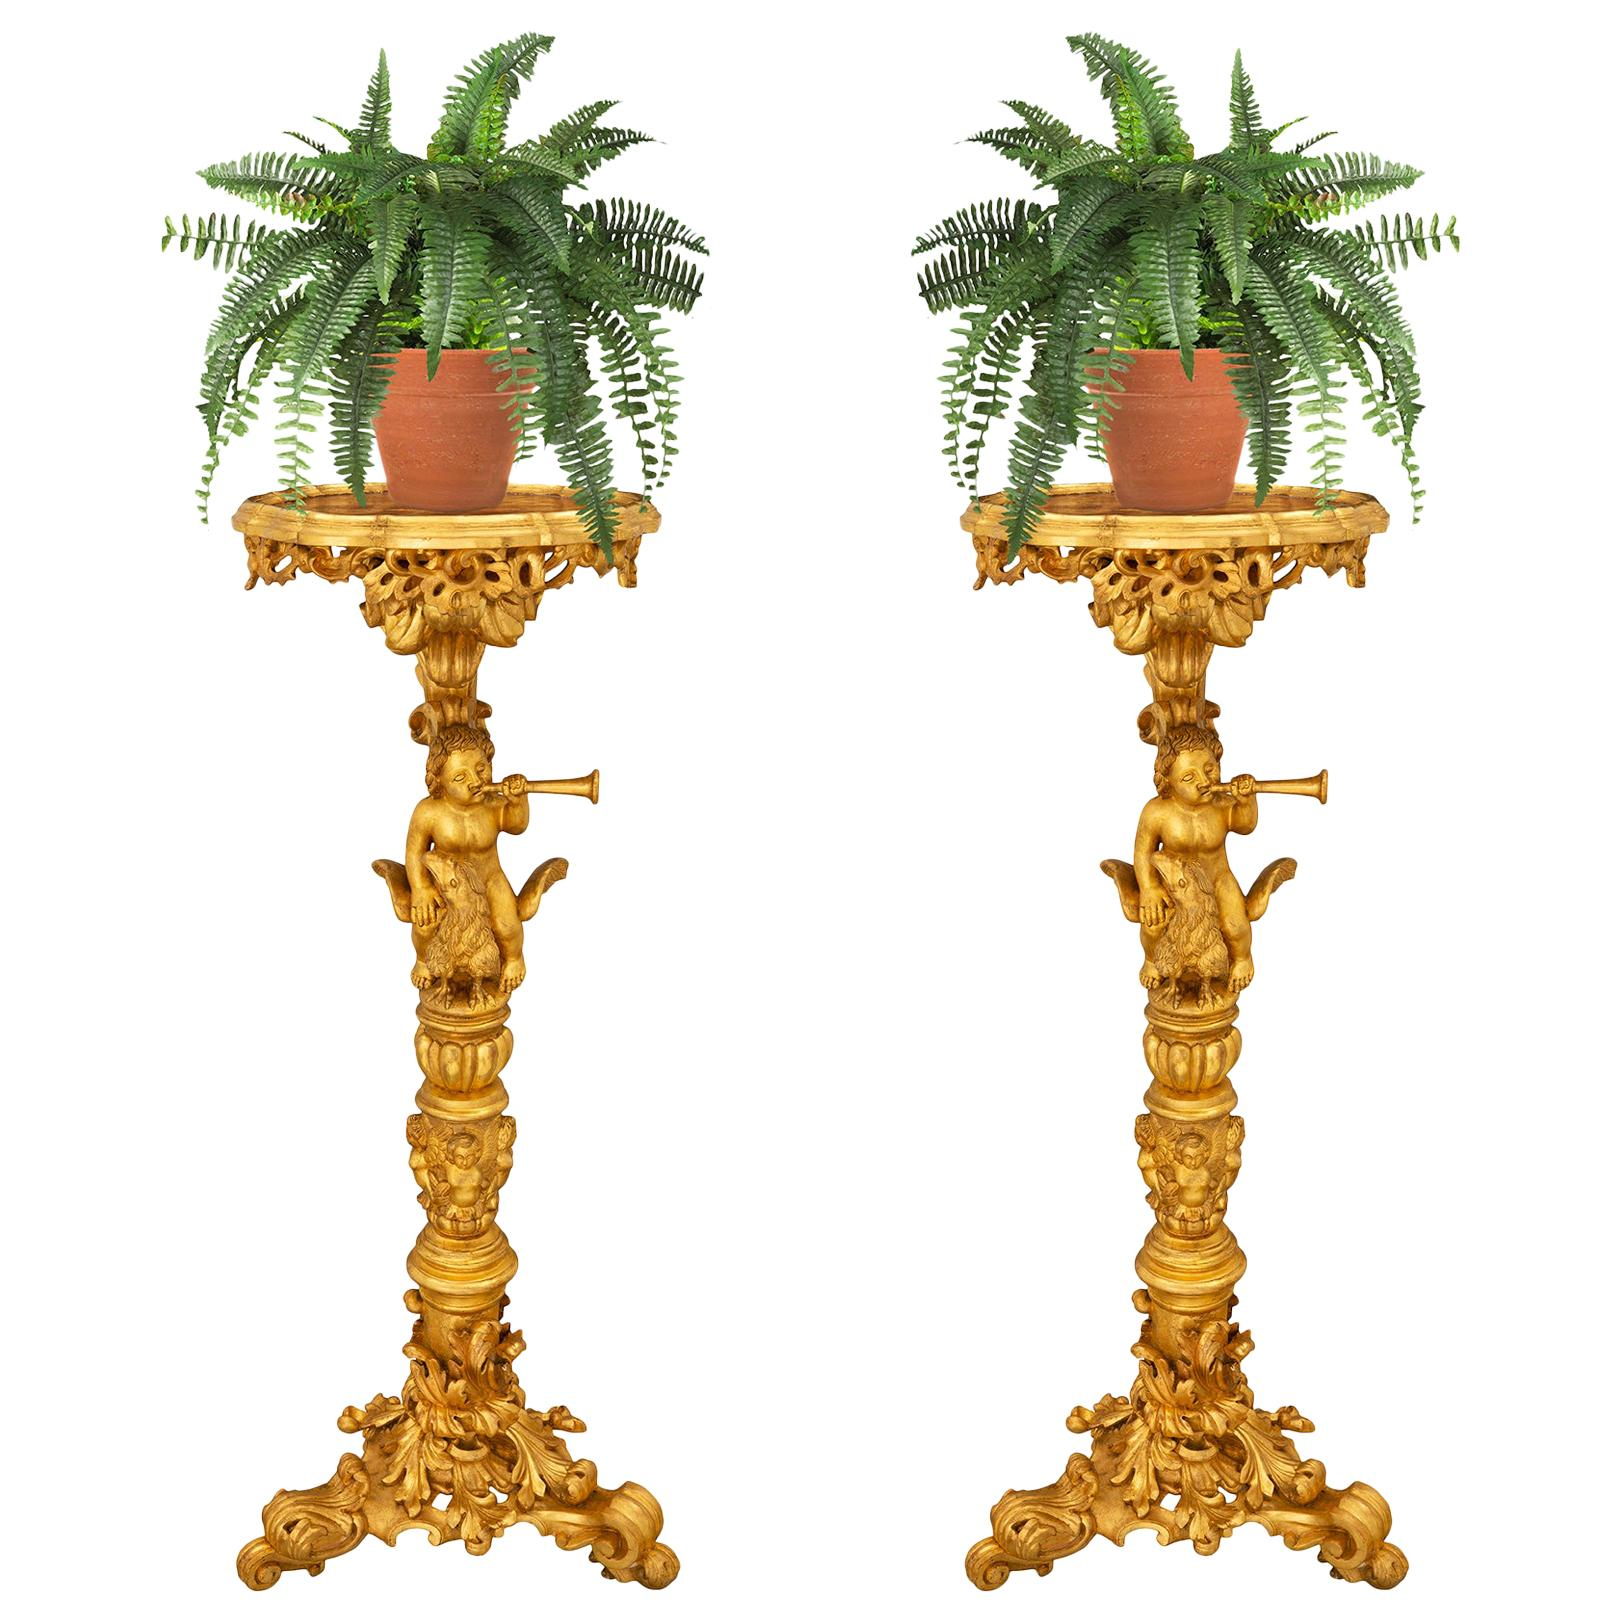 Pair of Italian Early 19th Century Baroque Style Giltwood Pedestals